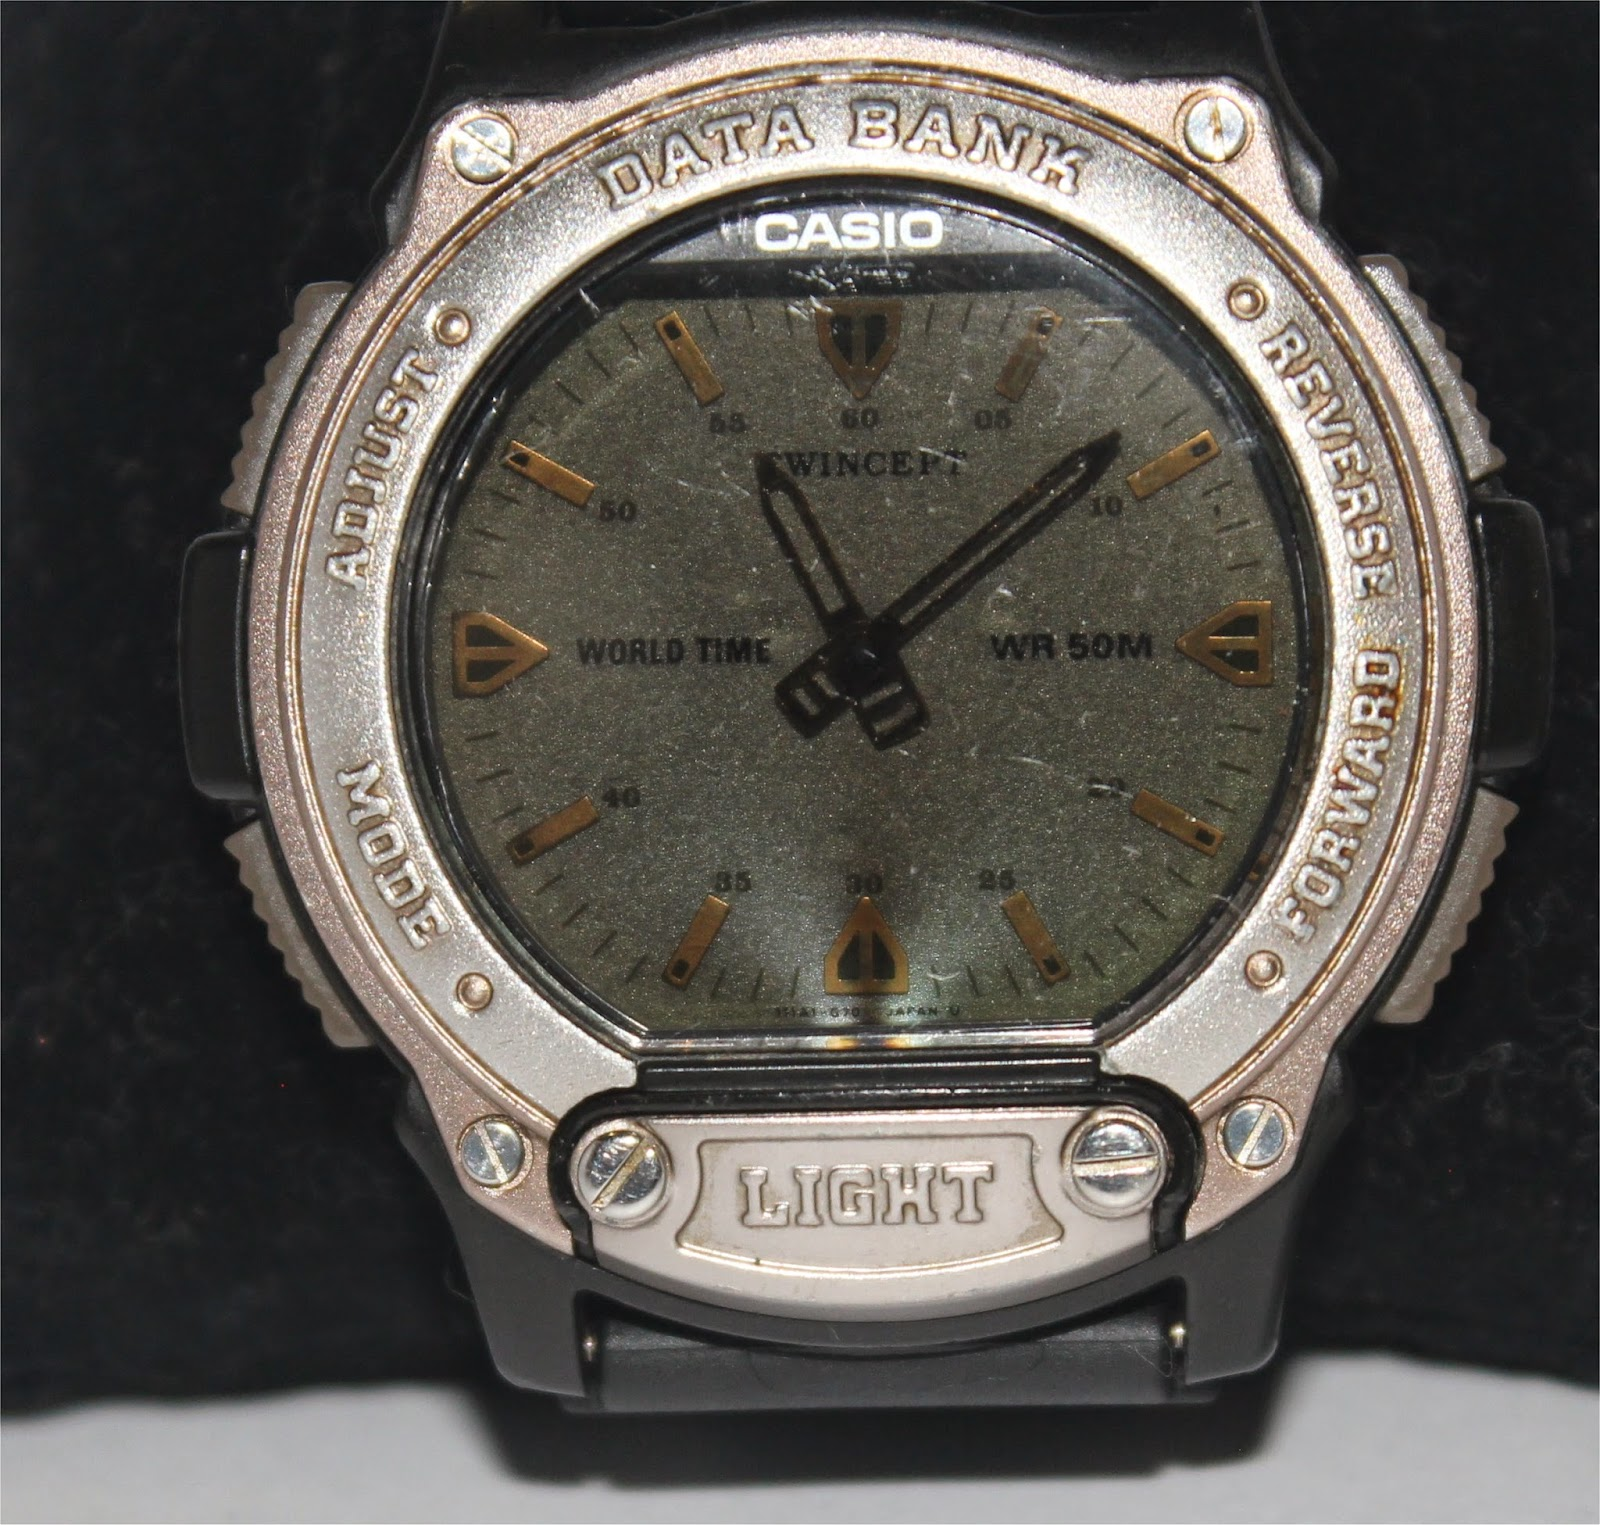 RELOJES CLÁSICOS ANTIGUOS OLD AND CLASSIC VINTAGE WATCH: 006